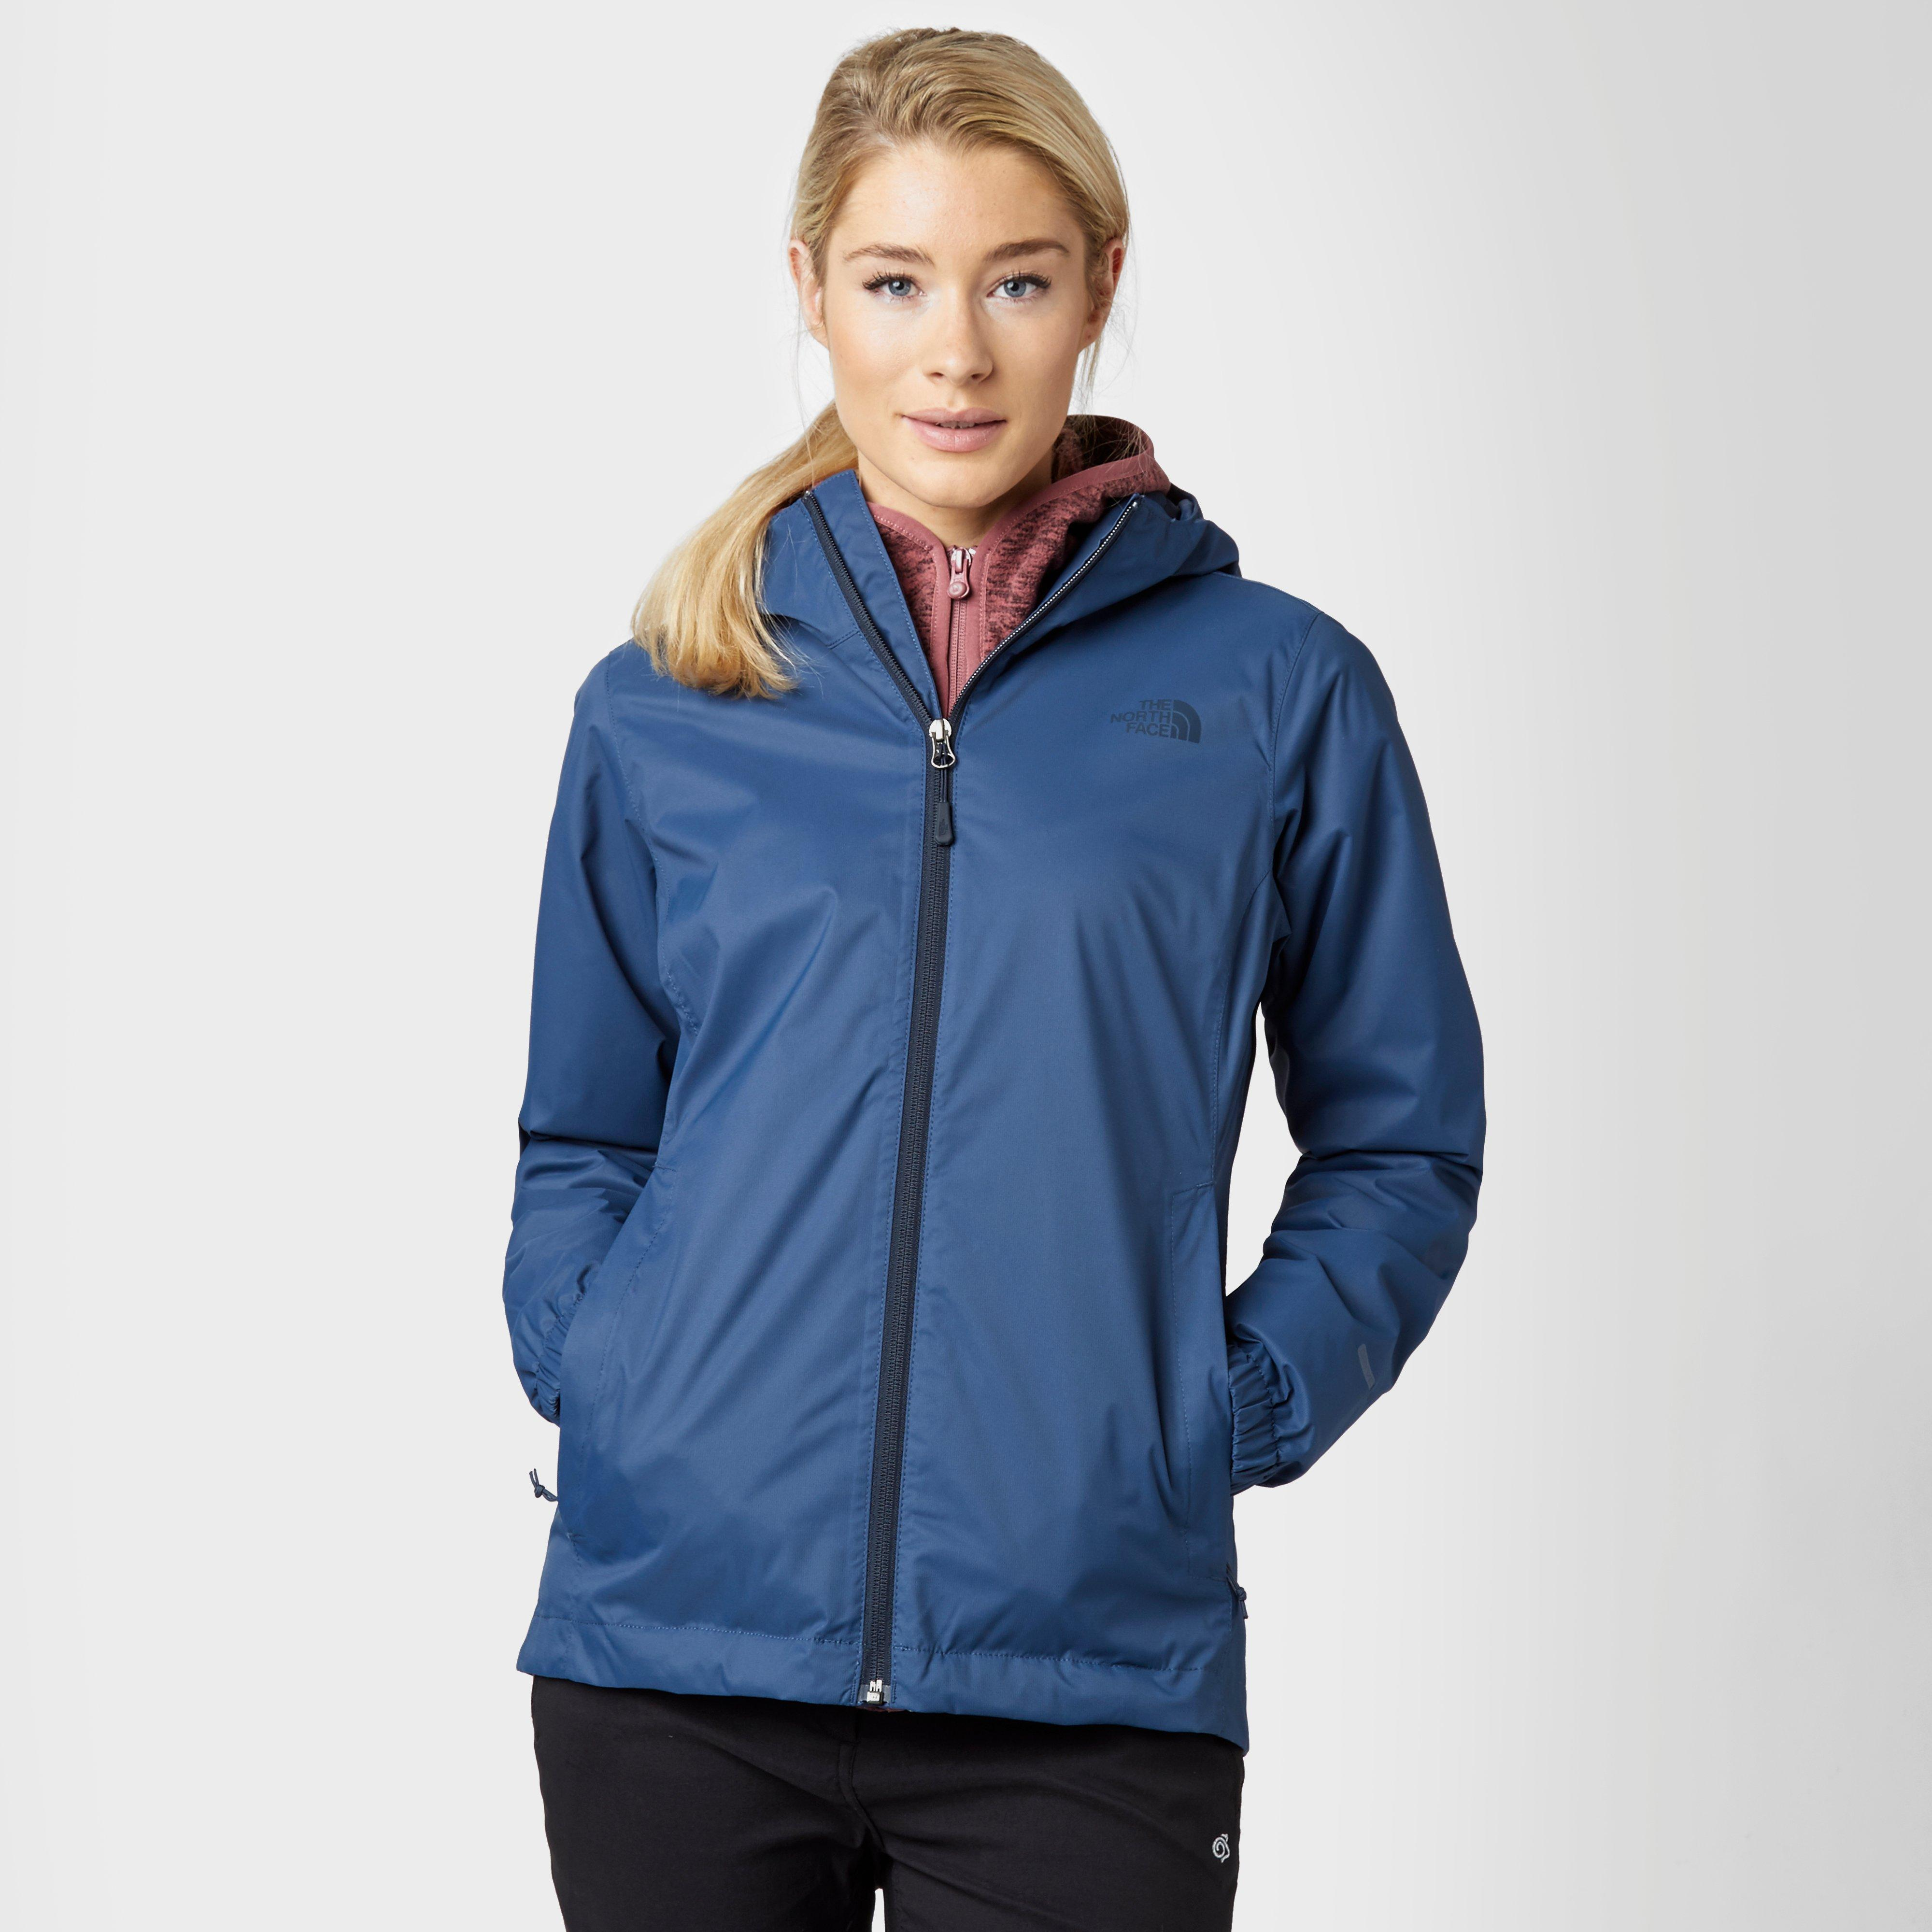 d8faeedc8 The North Face Women s Quest Jacket